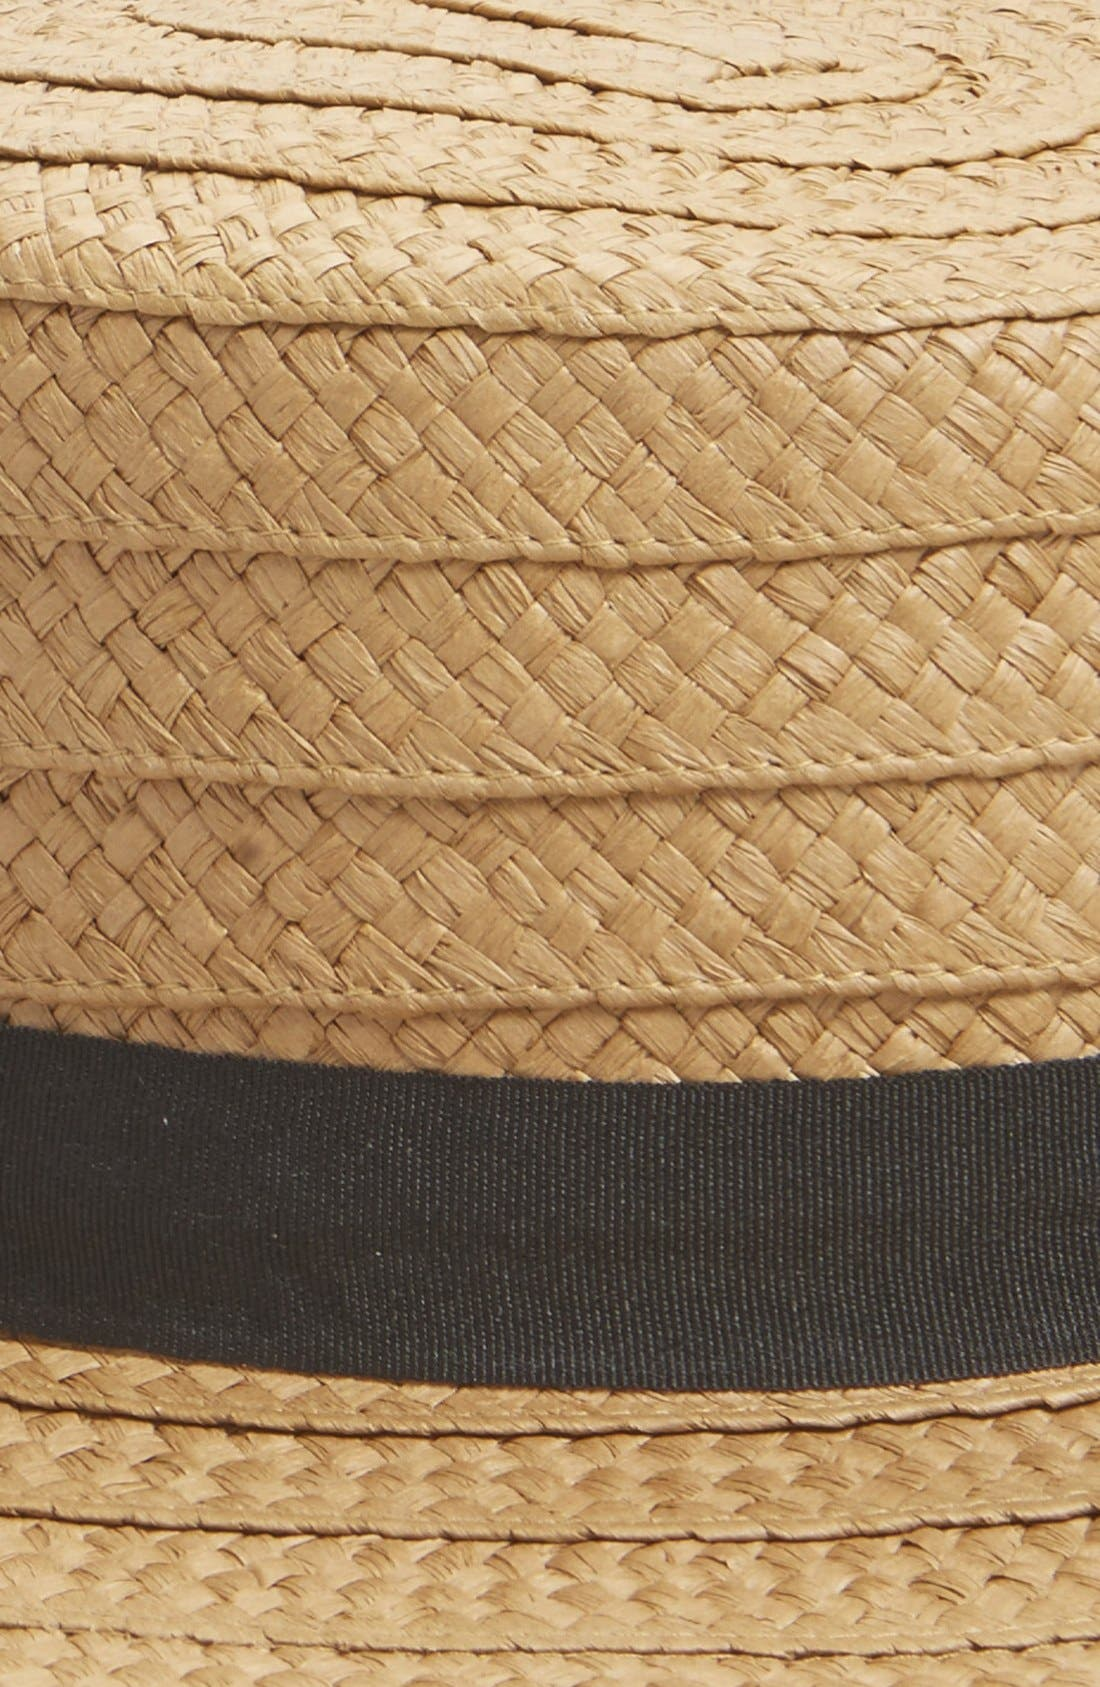 Straw Boater Hat,                             Alternate thumbnail 5, color,